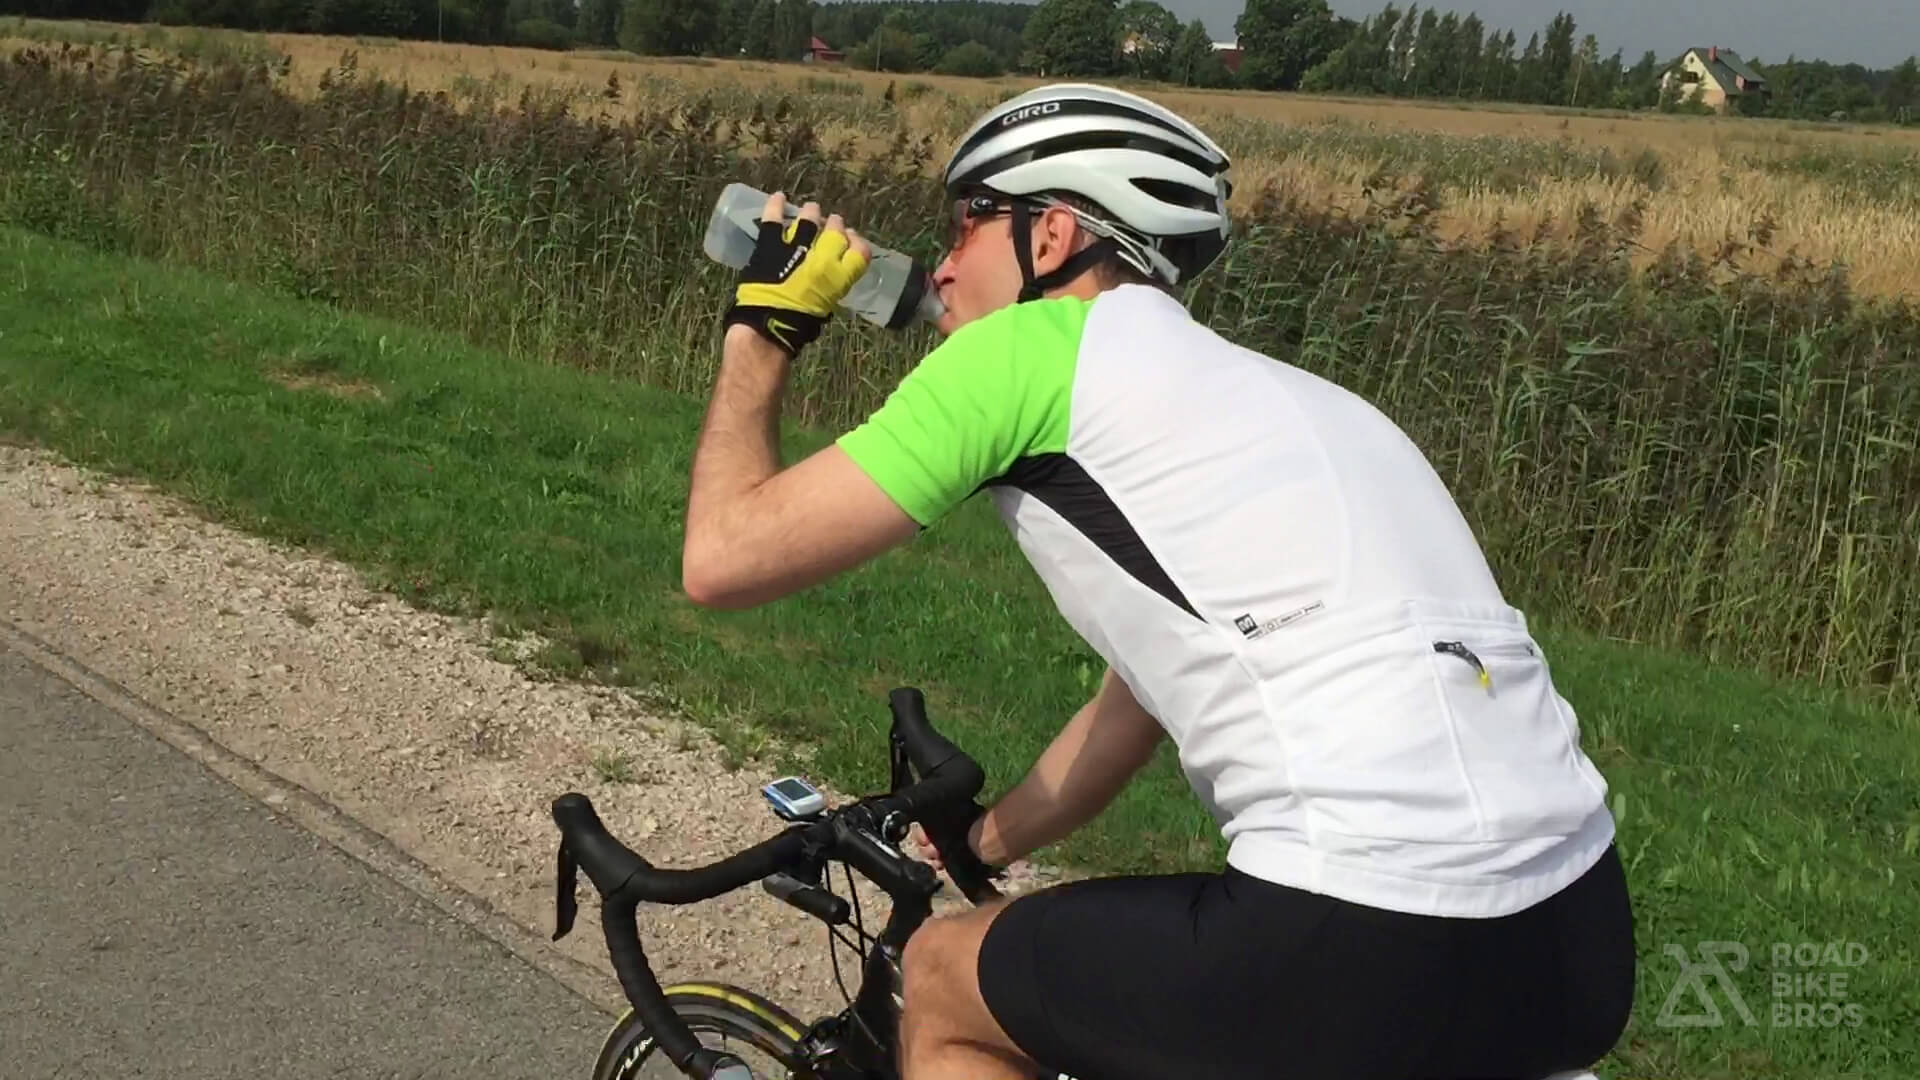 Cycling Water Bottles Drinking Riding Bike